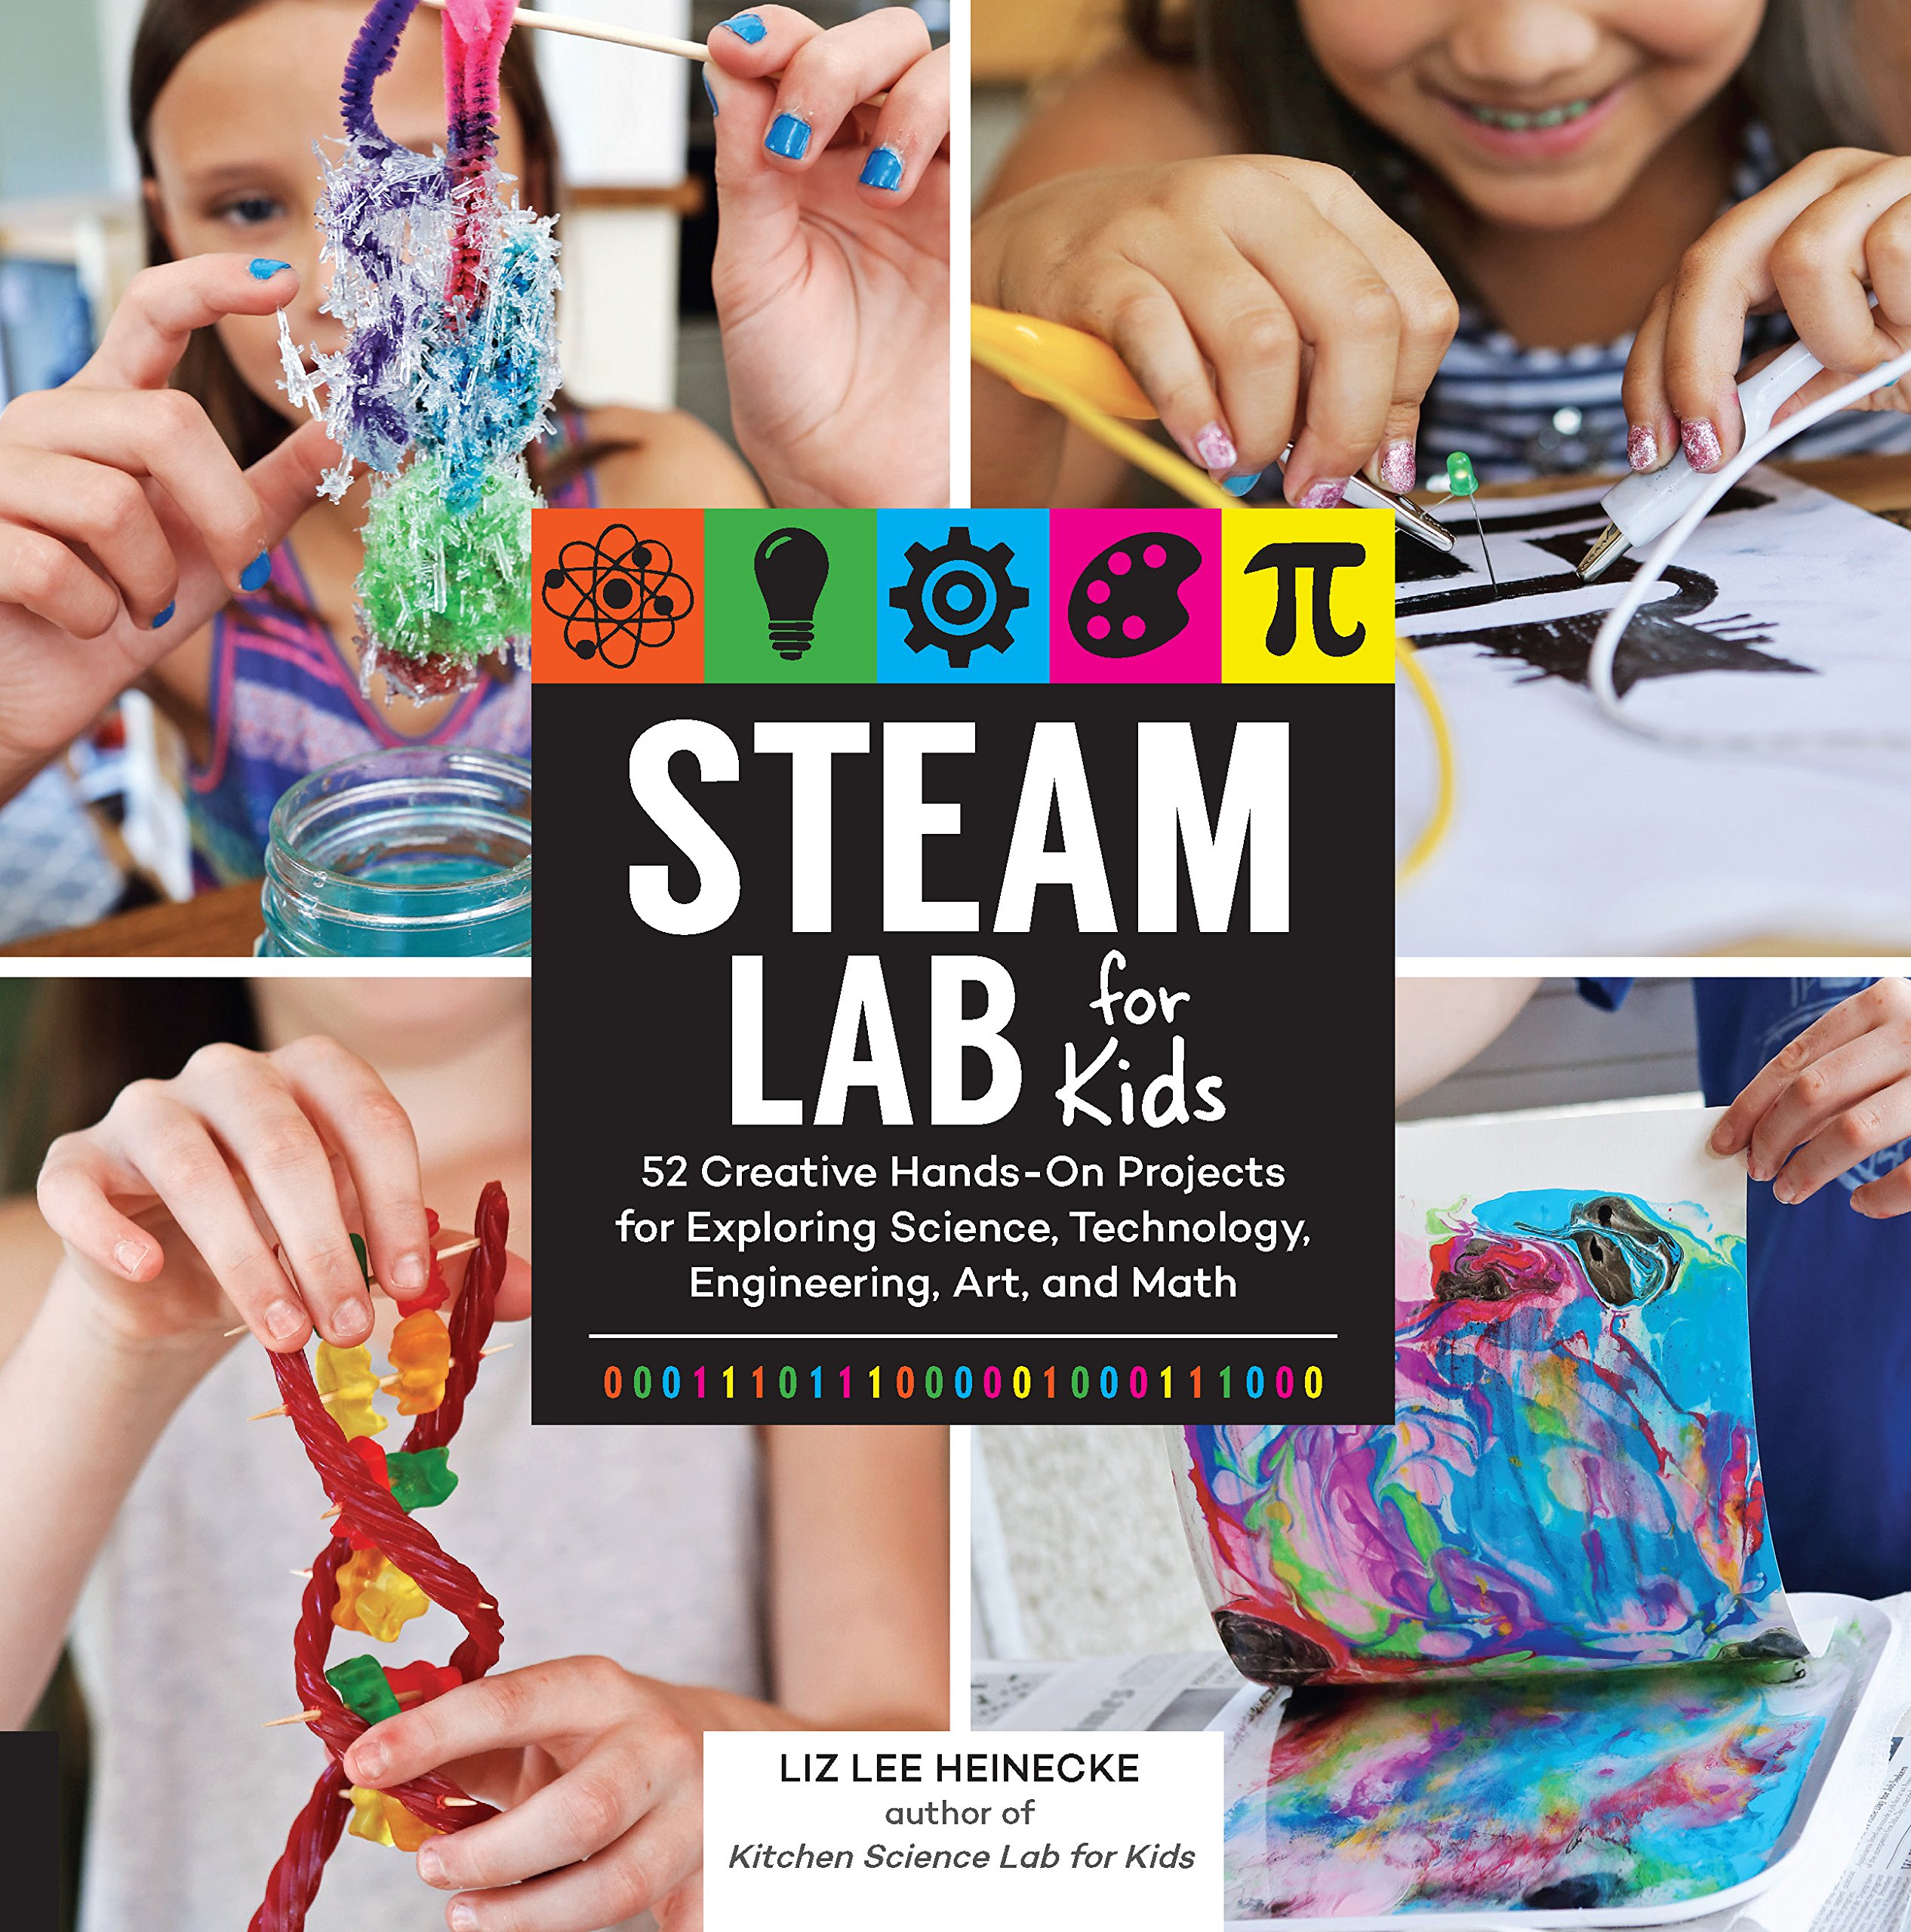 STEAM Lab for Kids: 52 Creative Hands-On Projects for Exploring Science, Technology, Engineering, Art, and Math (Lab for Kids (17))